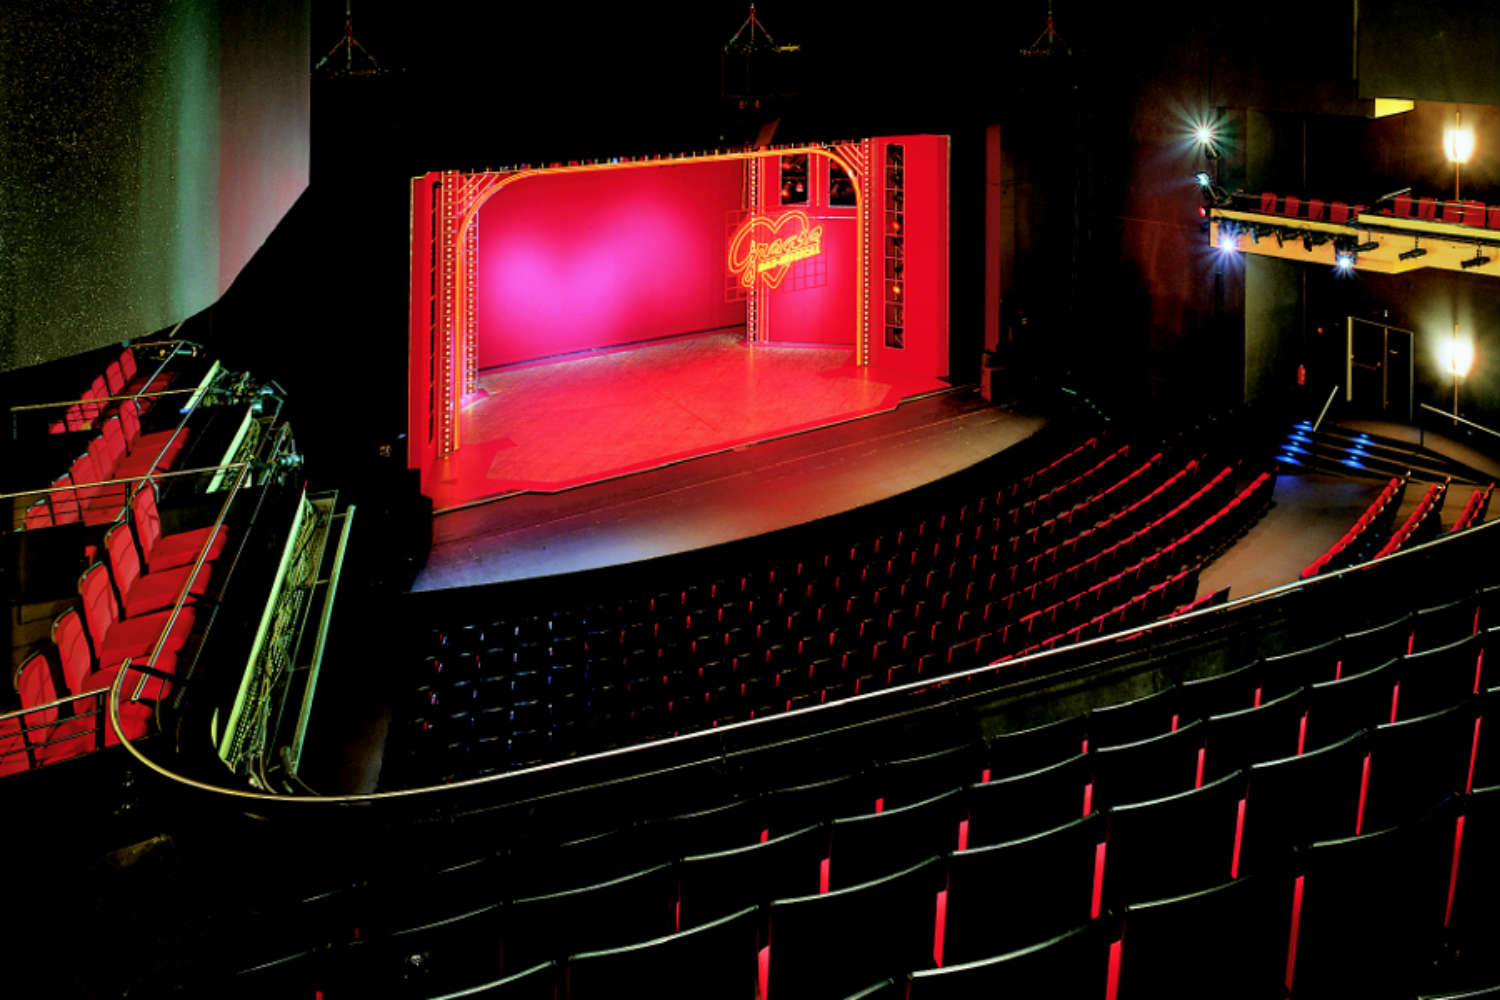 Musical Theater Basel in Basel, Switzerland. Acousting consulting and treatment by WSDG in Europe. Main stage with lighting